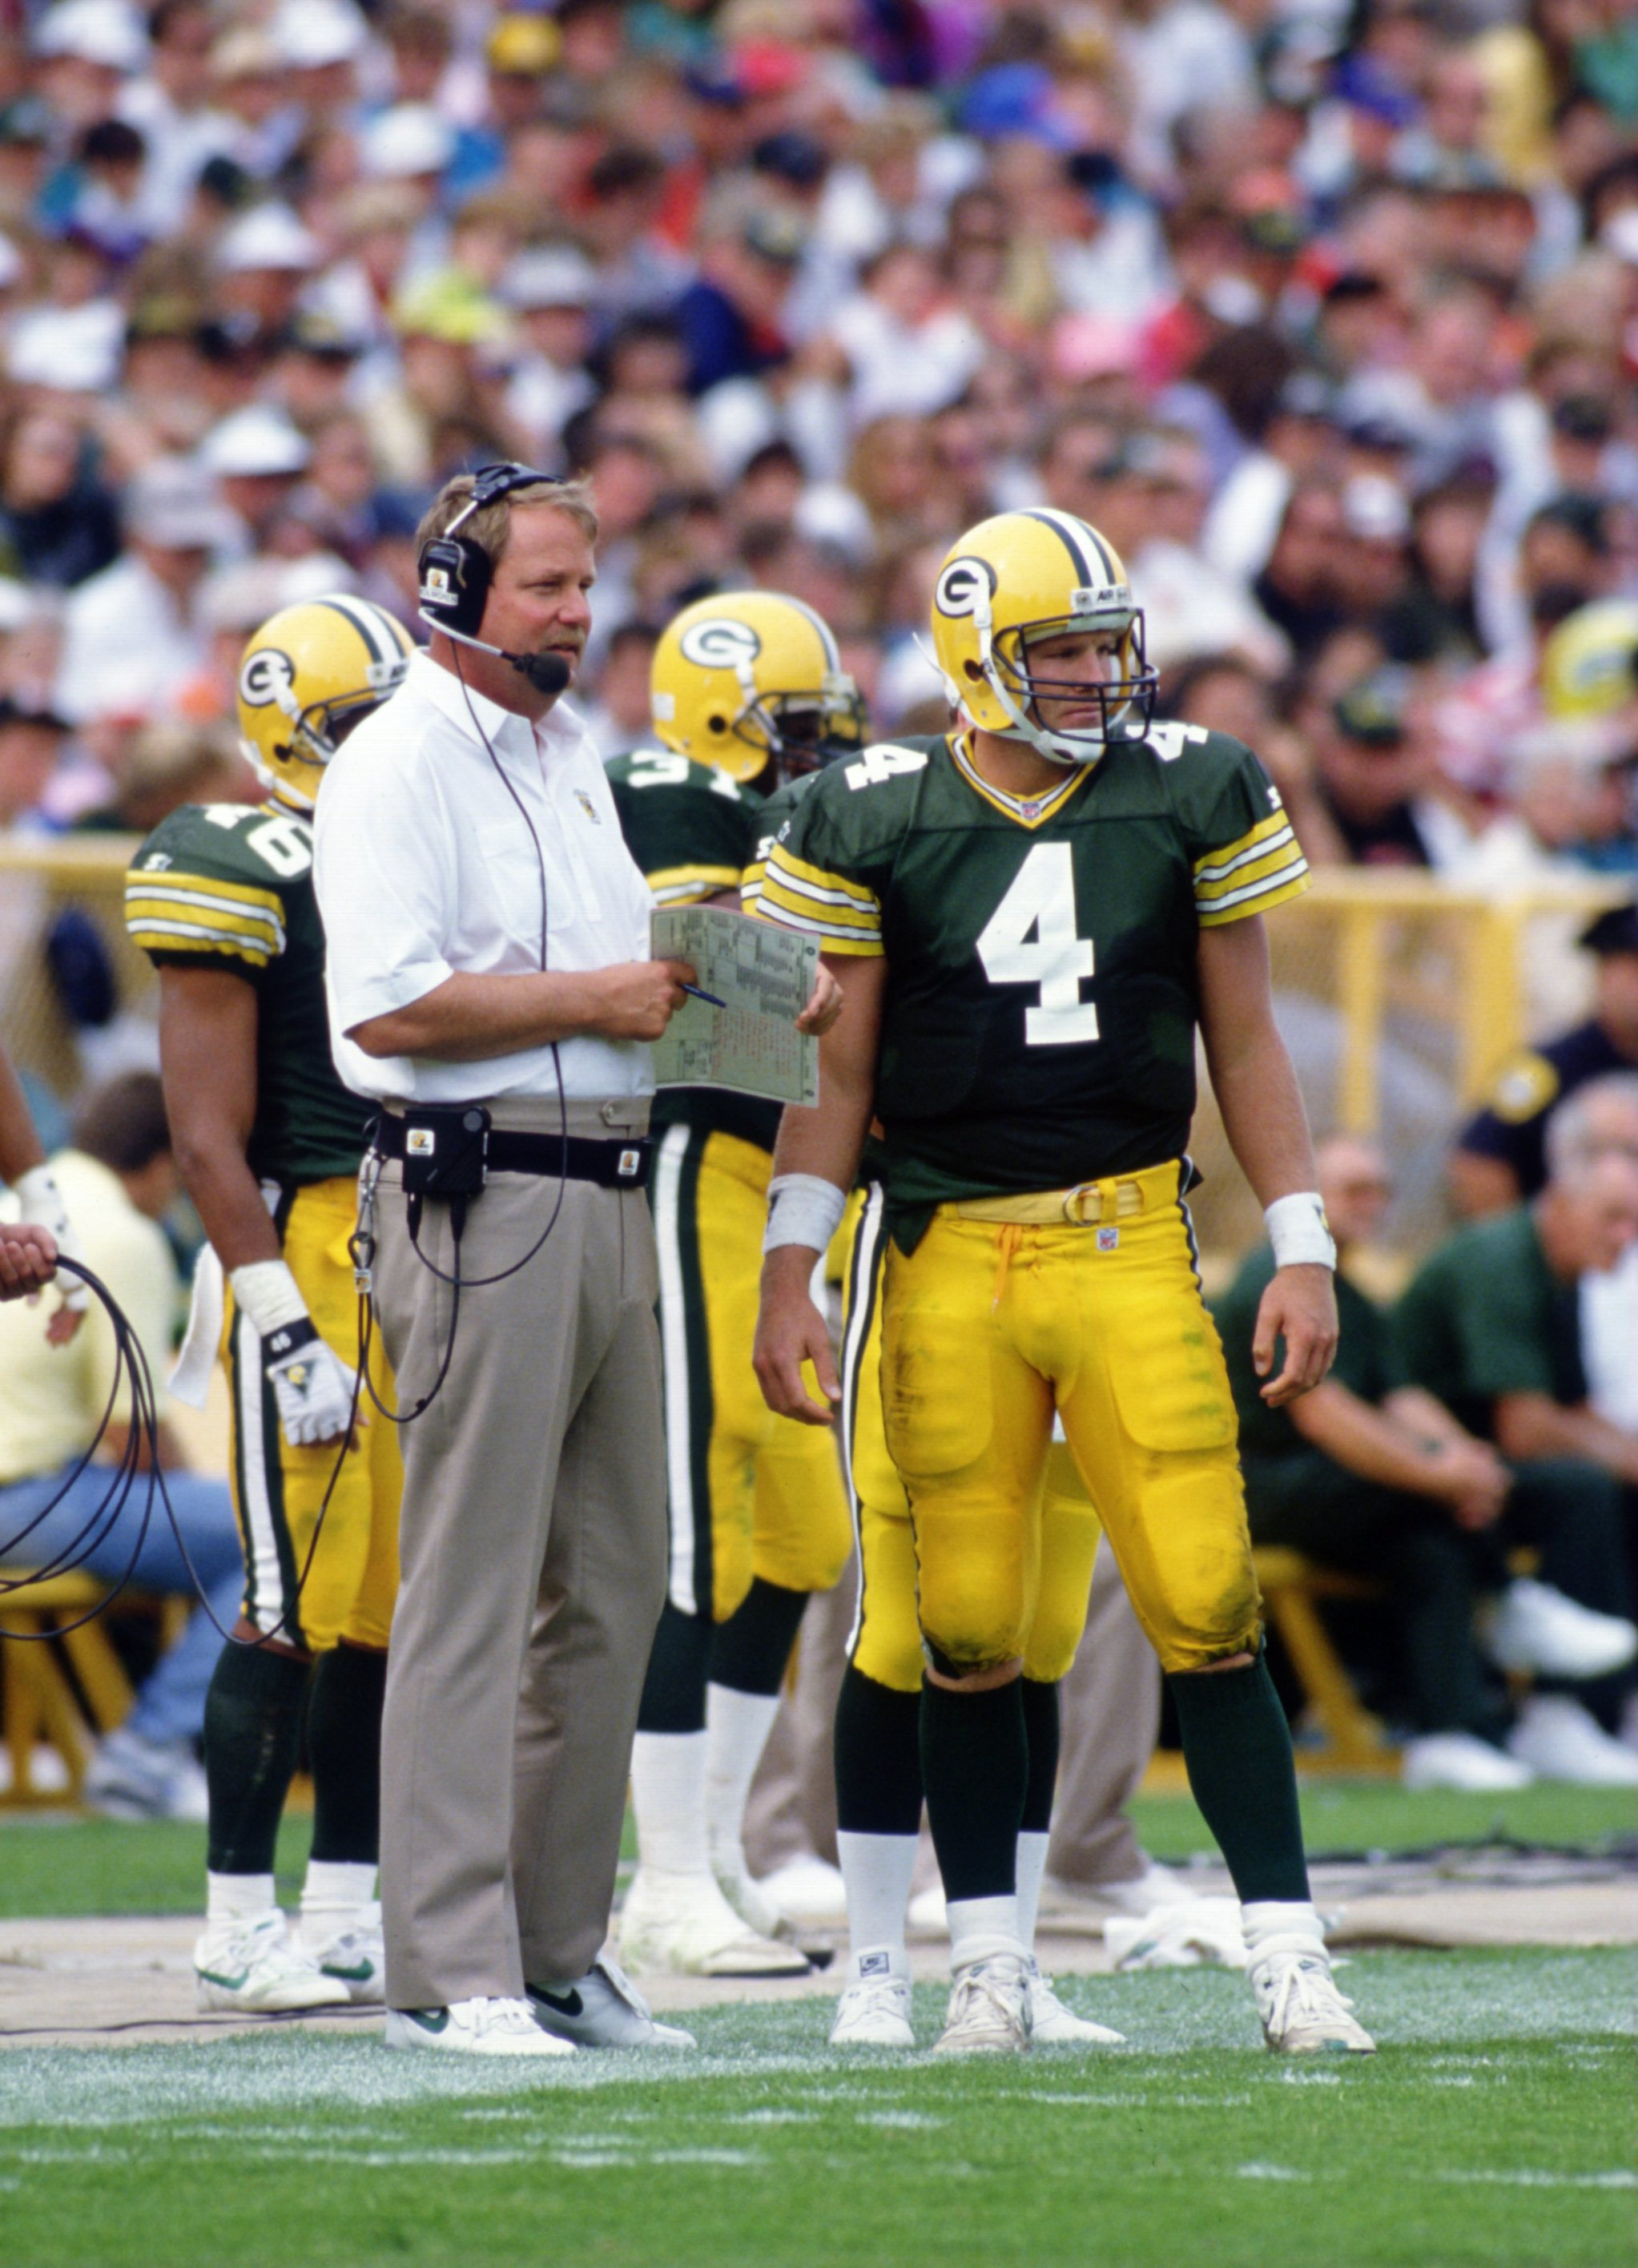 20 SEP 1992:  HEAD COACH MIKE HOLMGREN OF THE GREEN BAY PACKERS TALKS TO QUARTERBACK BRETT FAVRE DURING THE PACKERS 24-23 WIN OVER THE CINCINNATI BENGALS AT LAMBEAU FIELD IN GREEN BAY, WISCONSIN. Mandatory Credit: Jonathan Daniel/ALLSPORT